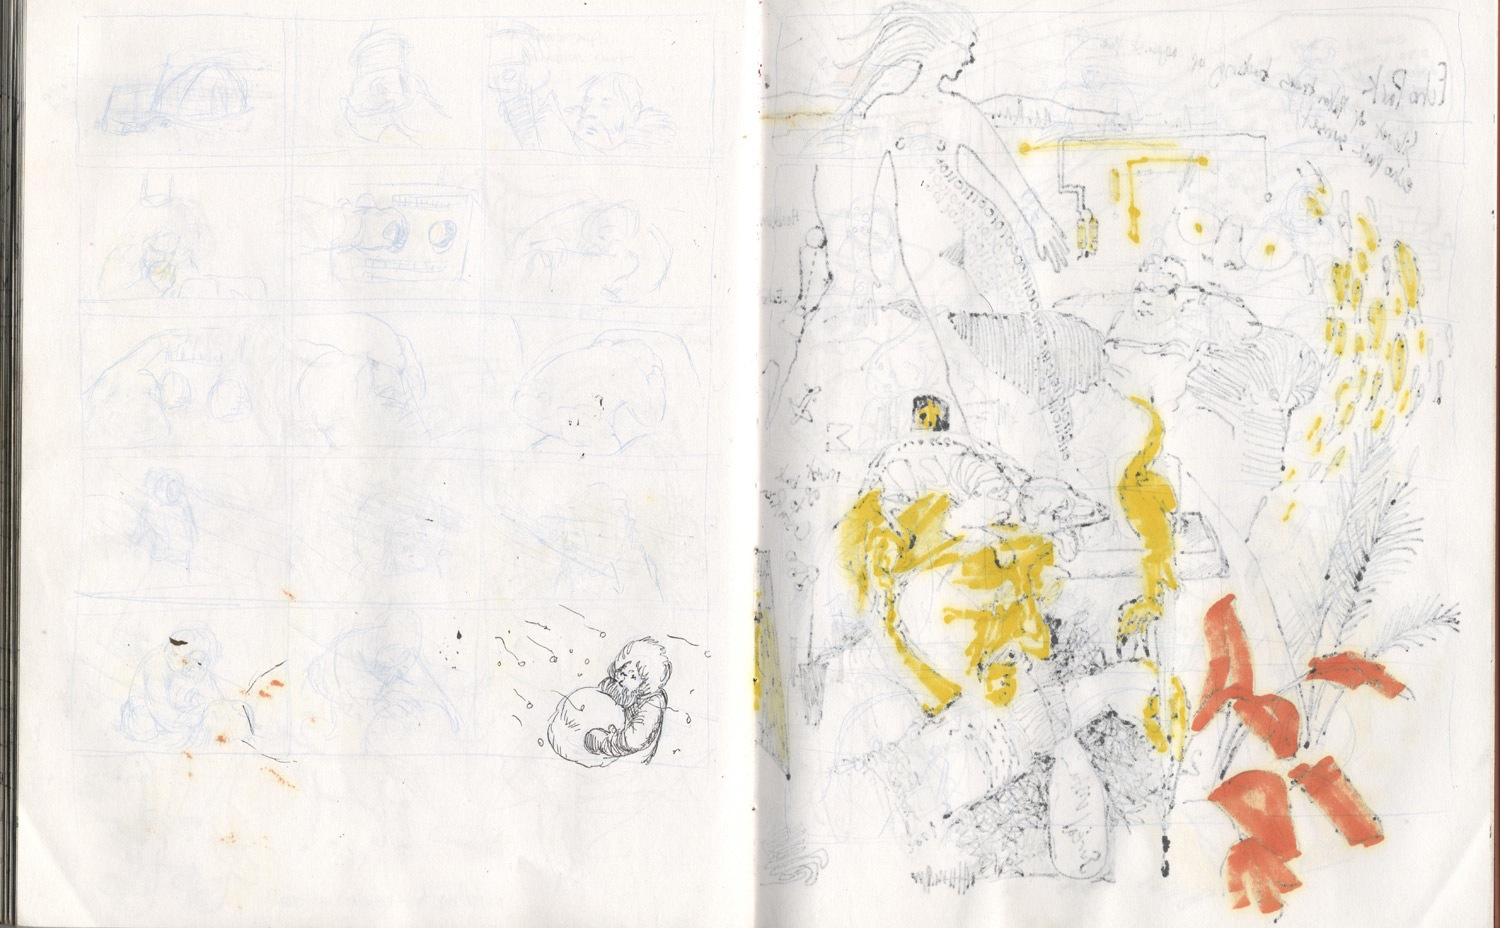 faded drawings